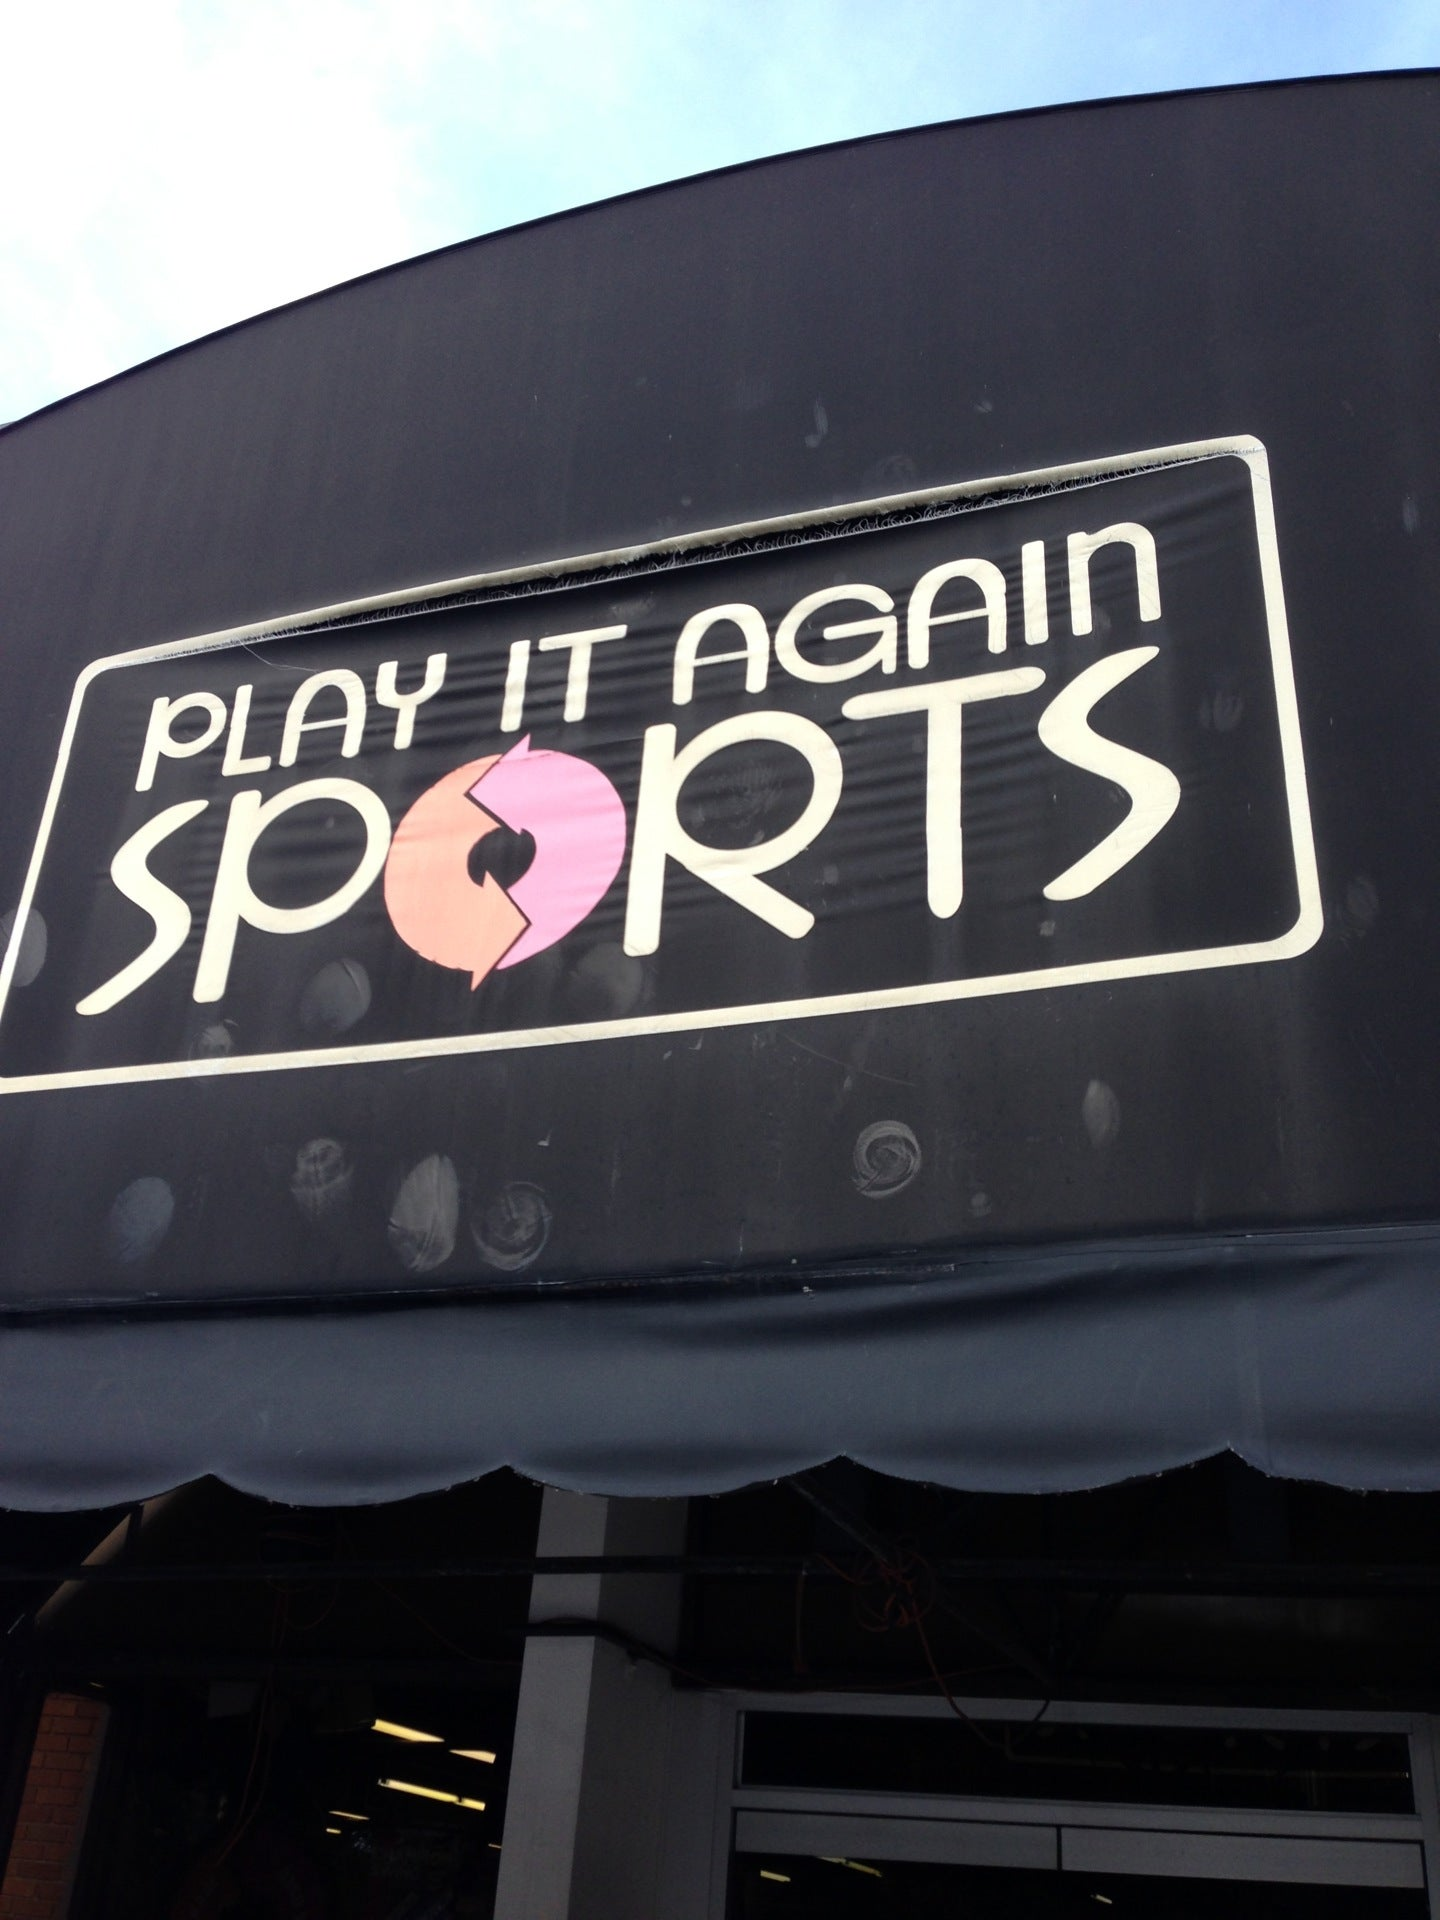 PLAY IT AGAIN SPORTS,the best place to buy new and used sporting goods and fitness equipment!